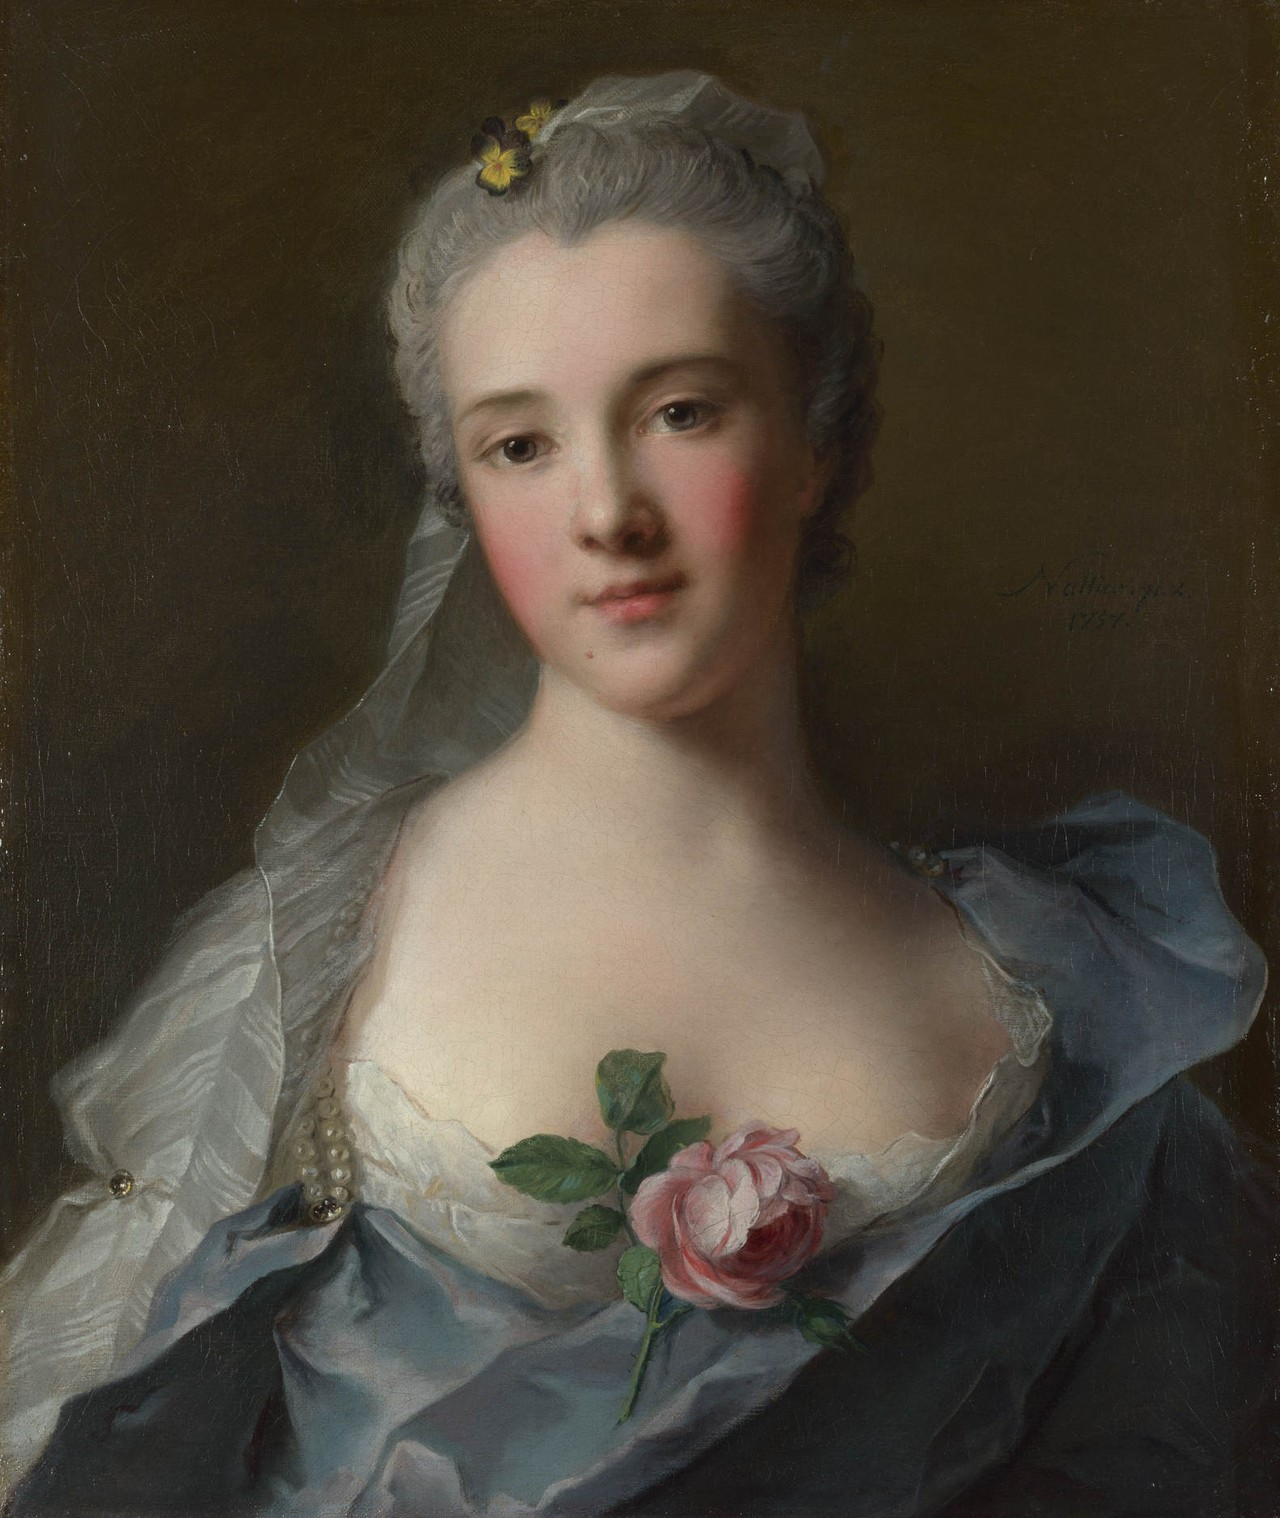 Portrait of Manon Balletti, by Jean-Marc Nattier, 1757. The National Gallery, London.